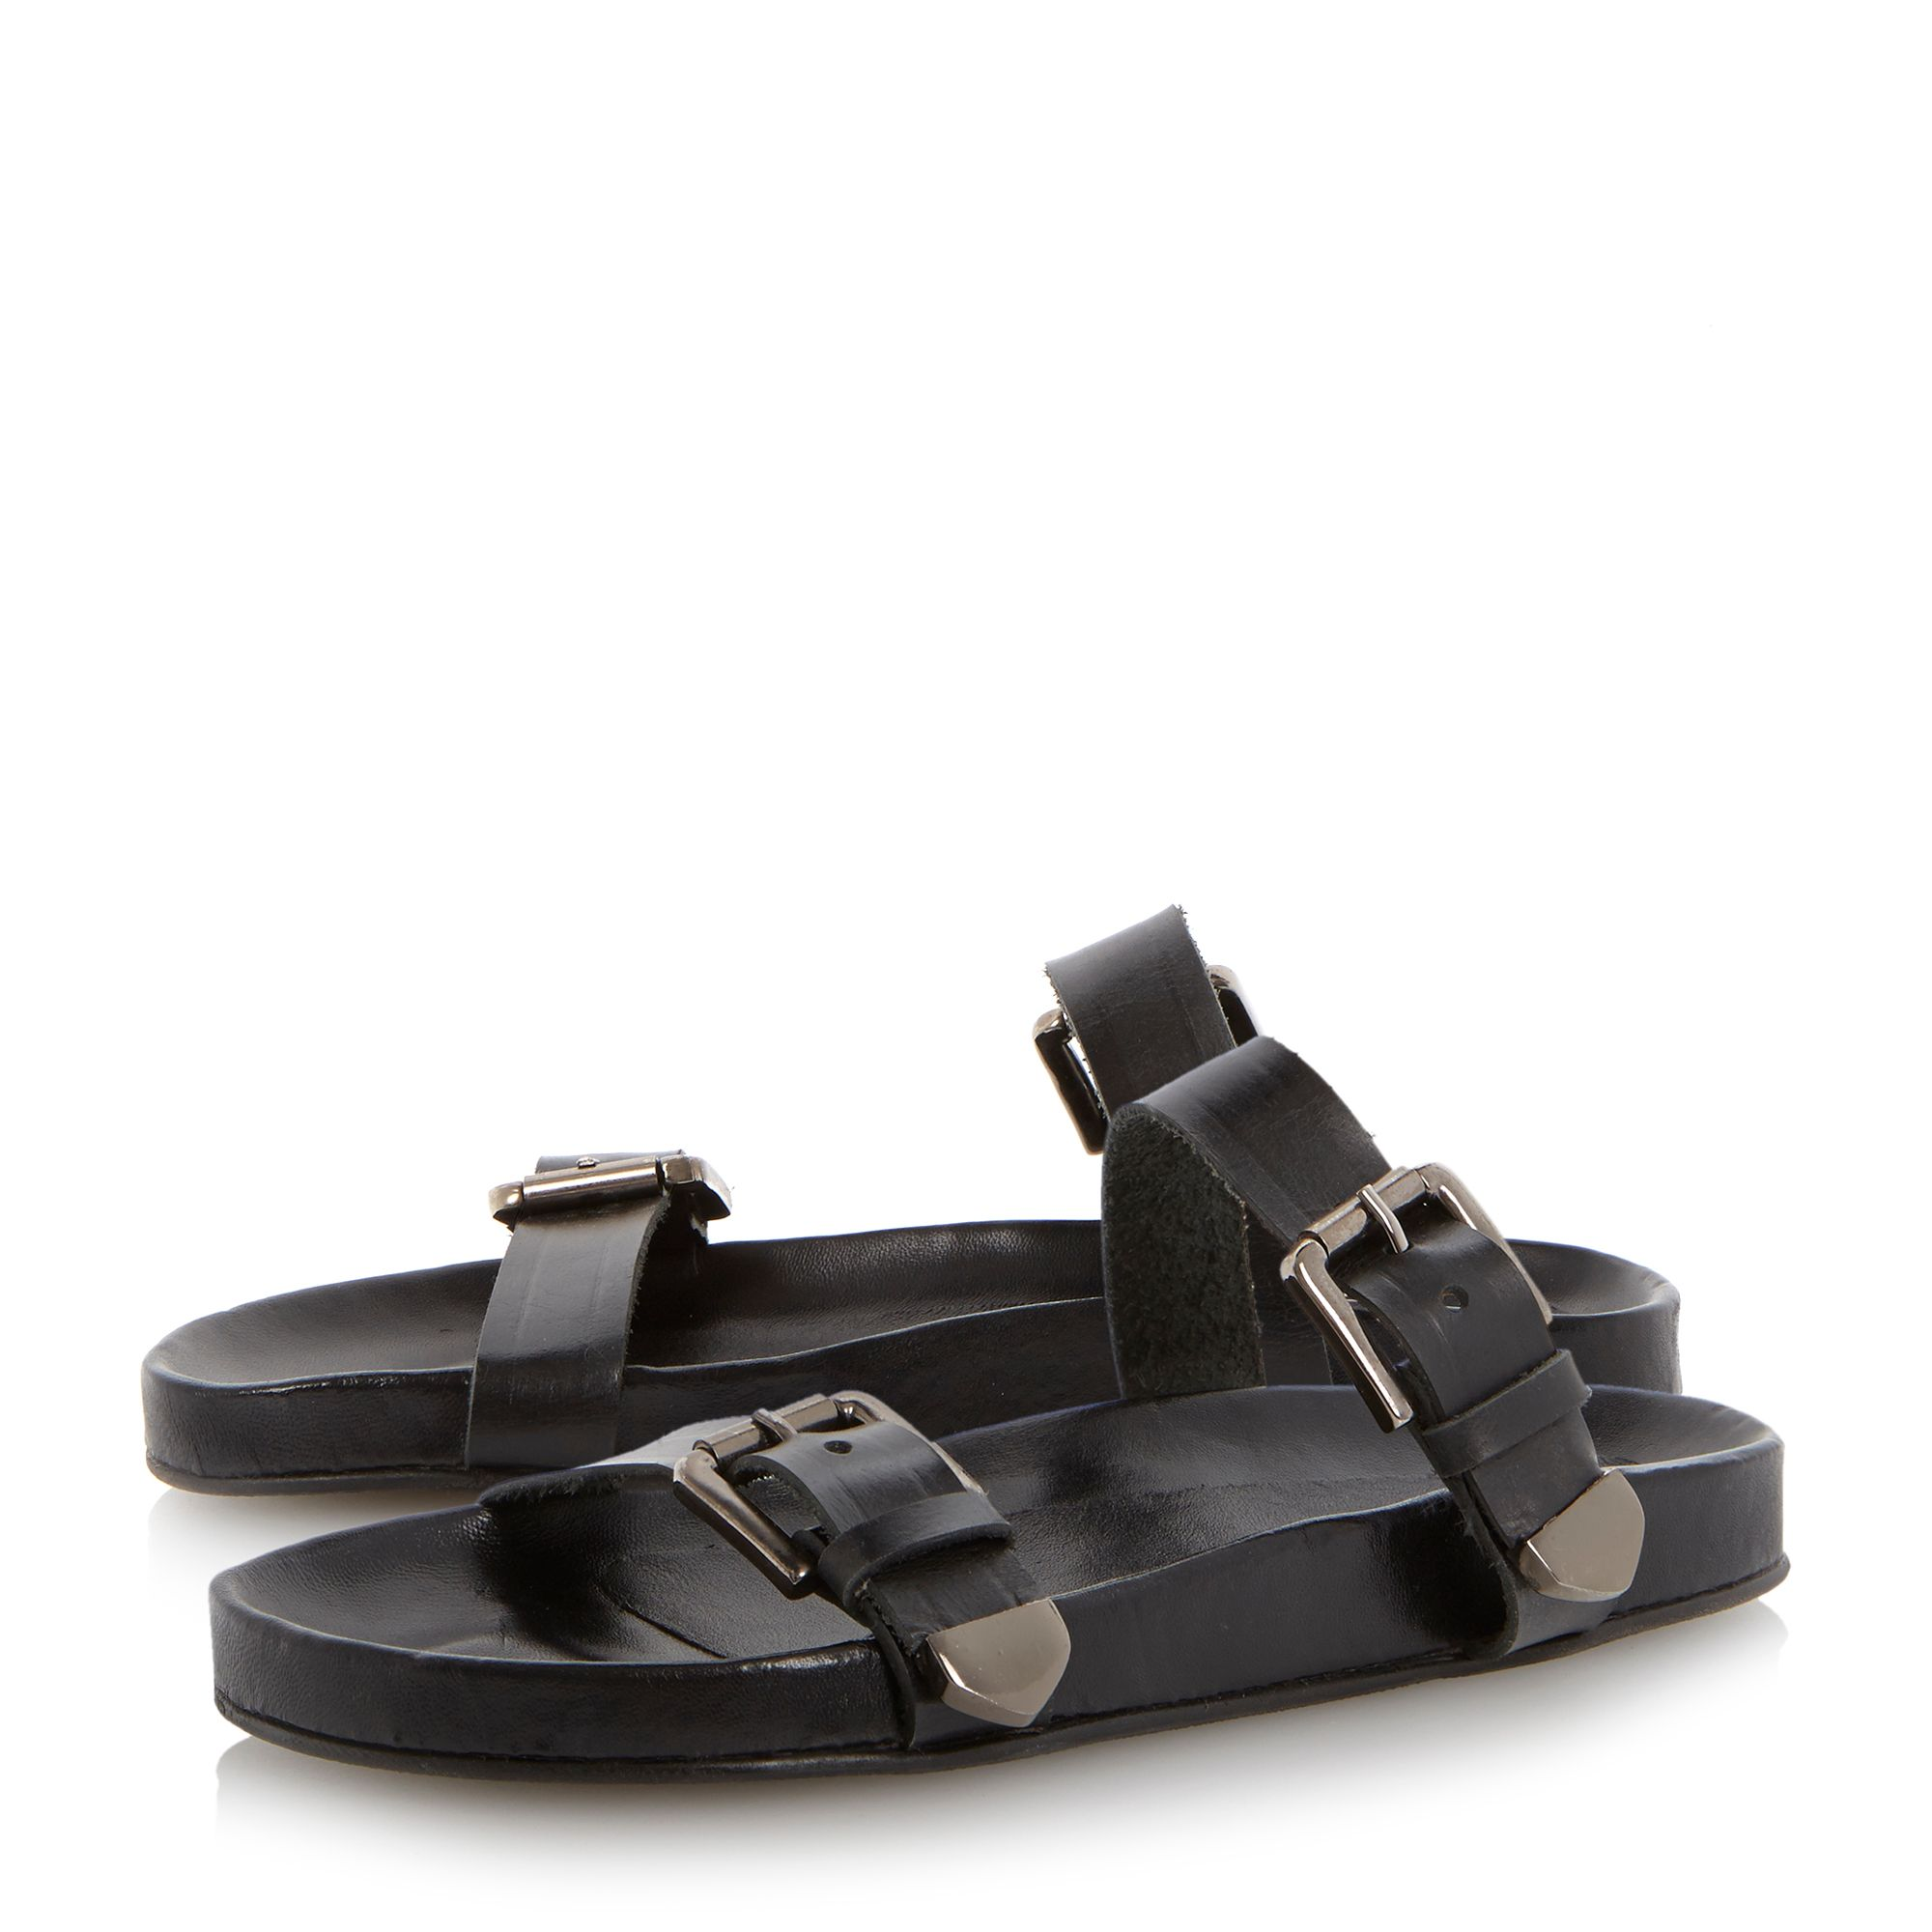 Jac double buckle footbed sandals